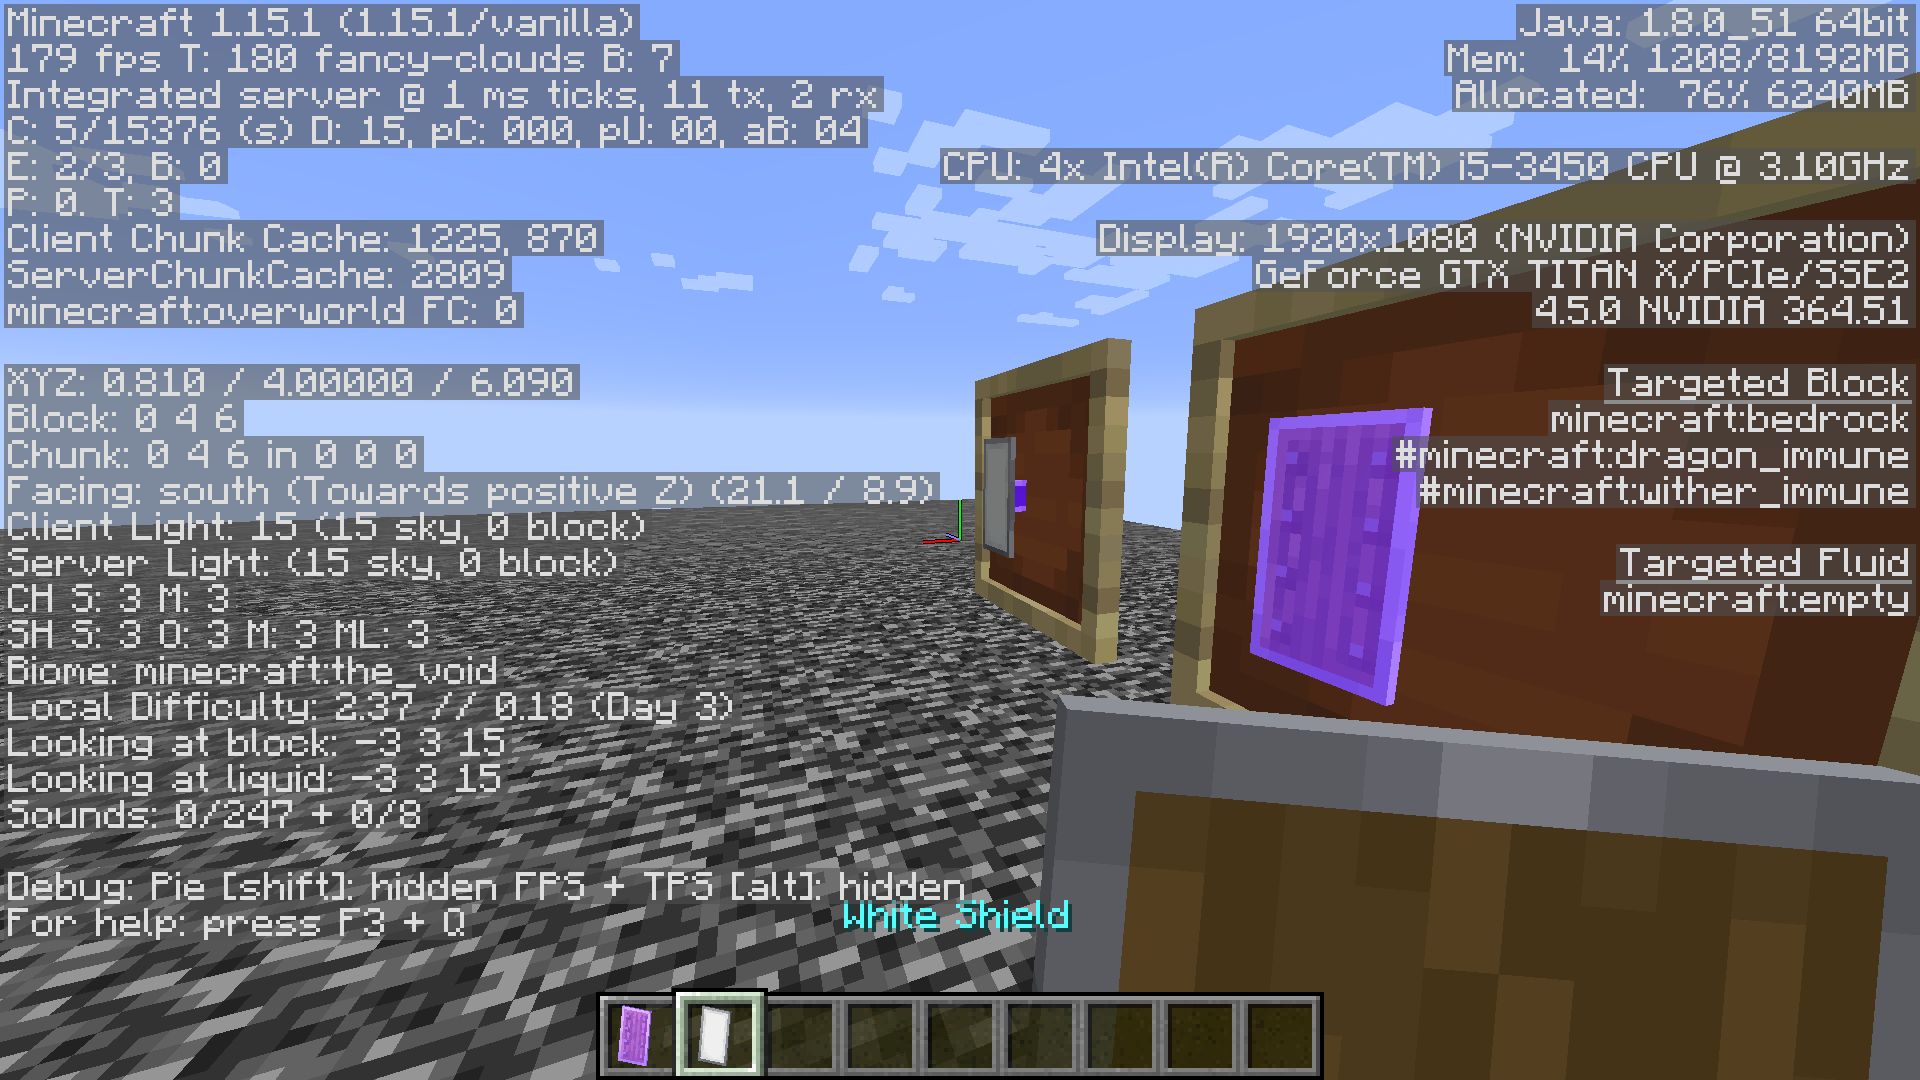 MC-1222] 122.1225.122 Broken Enchantment Glint On Shields With Banners